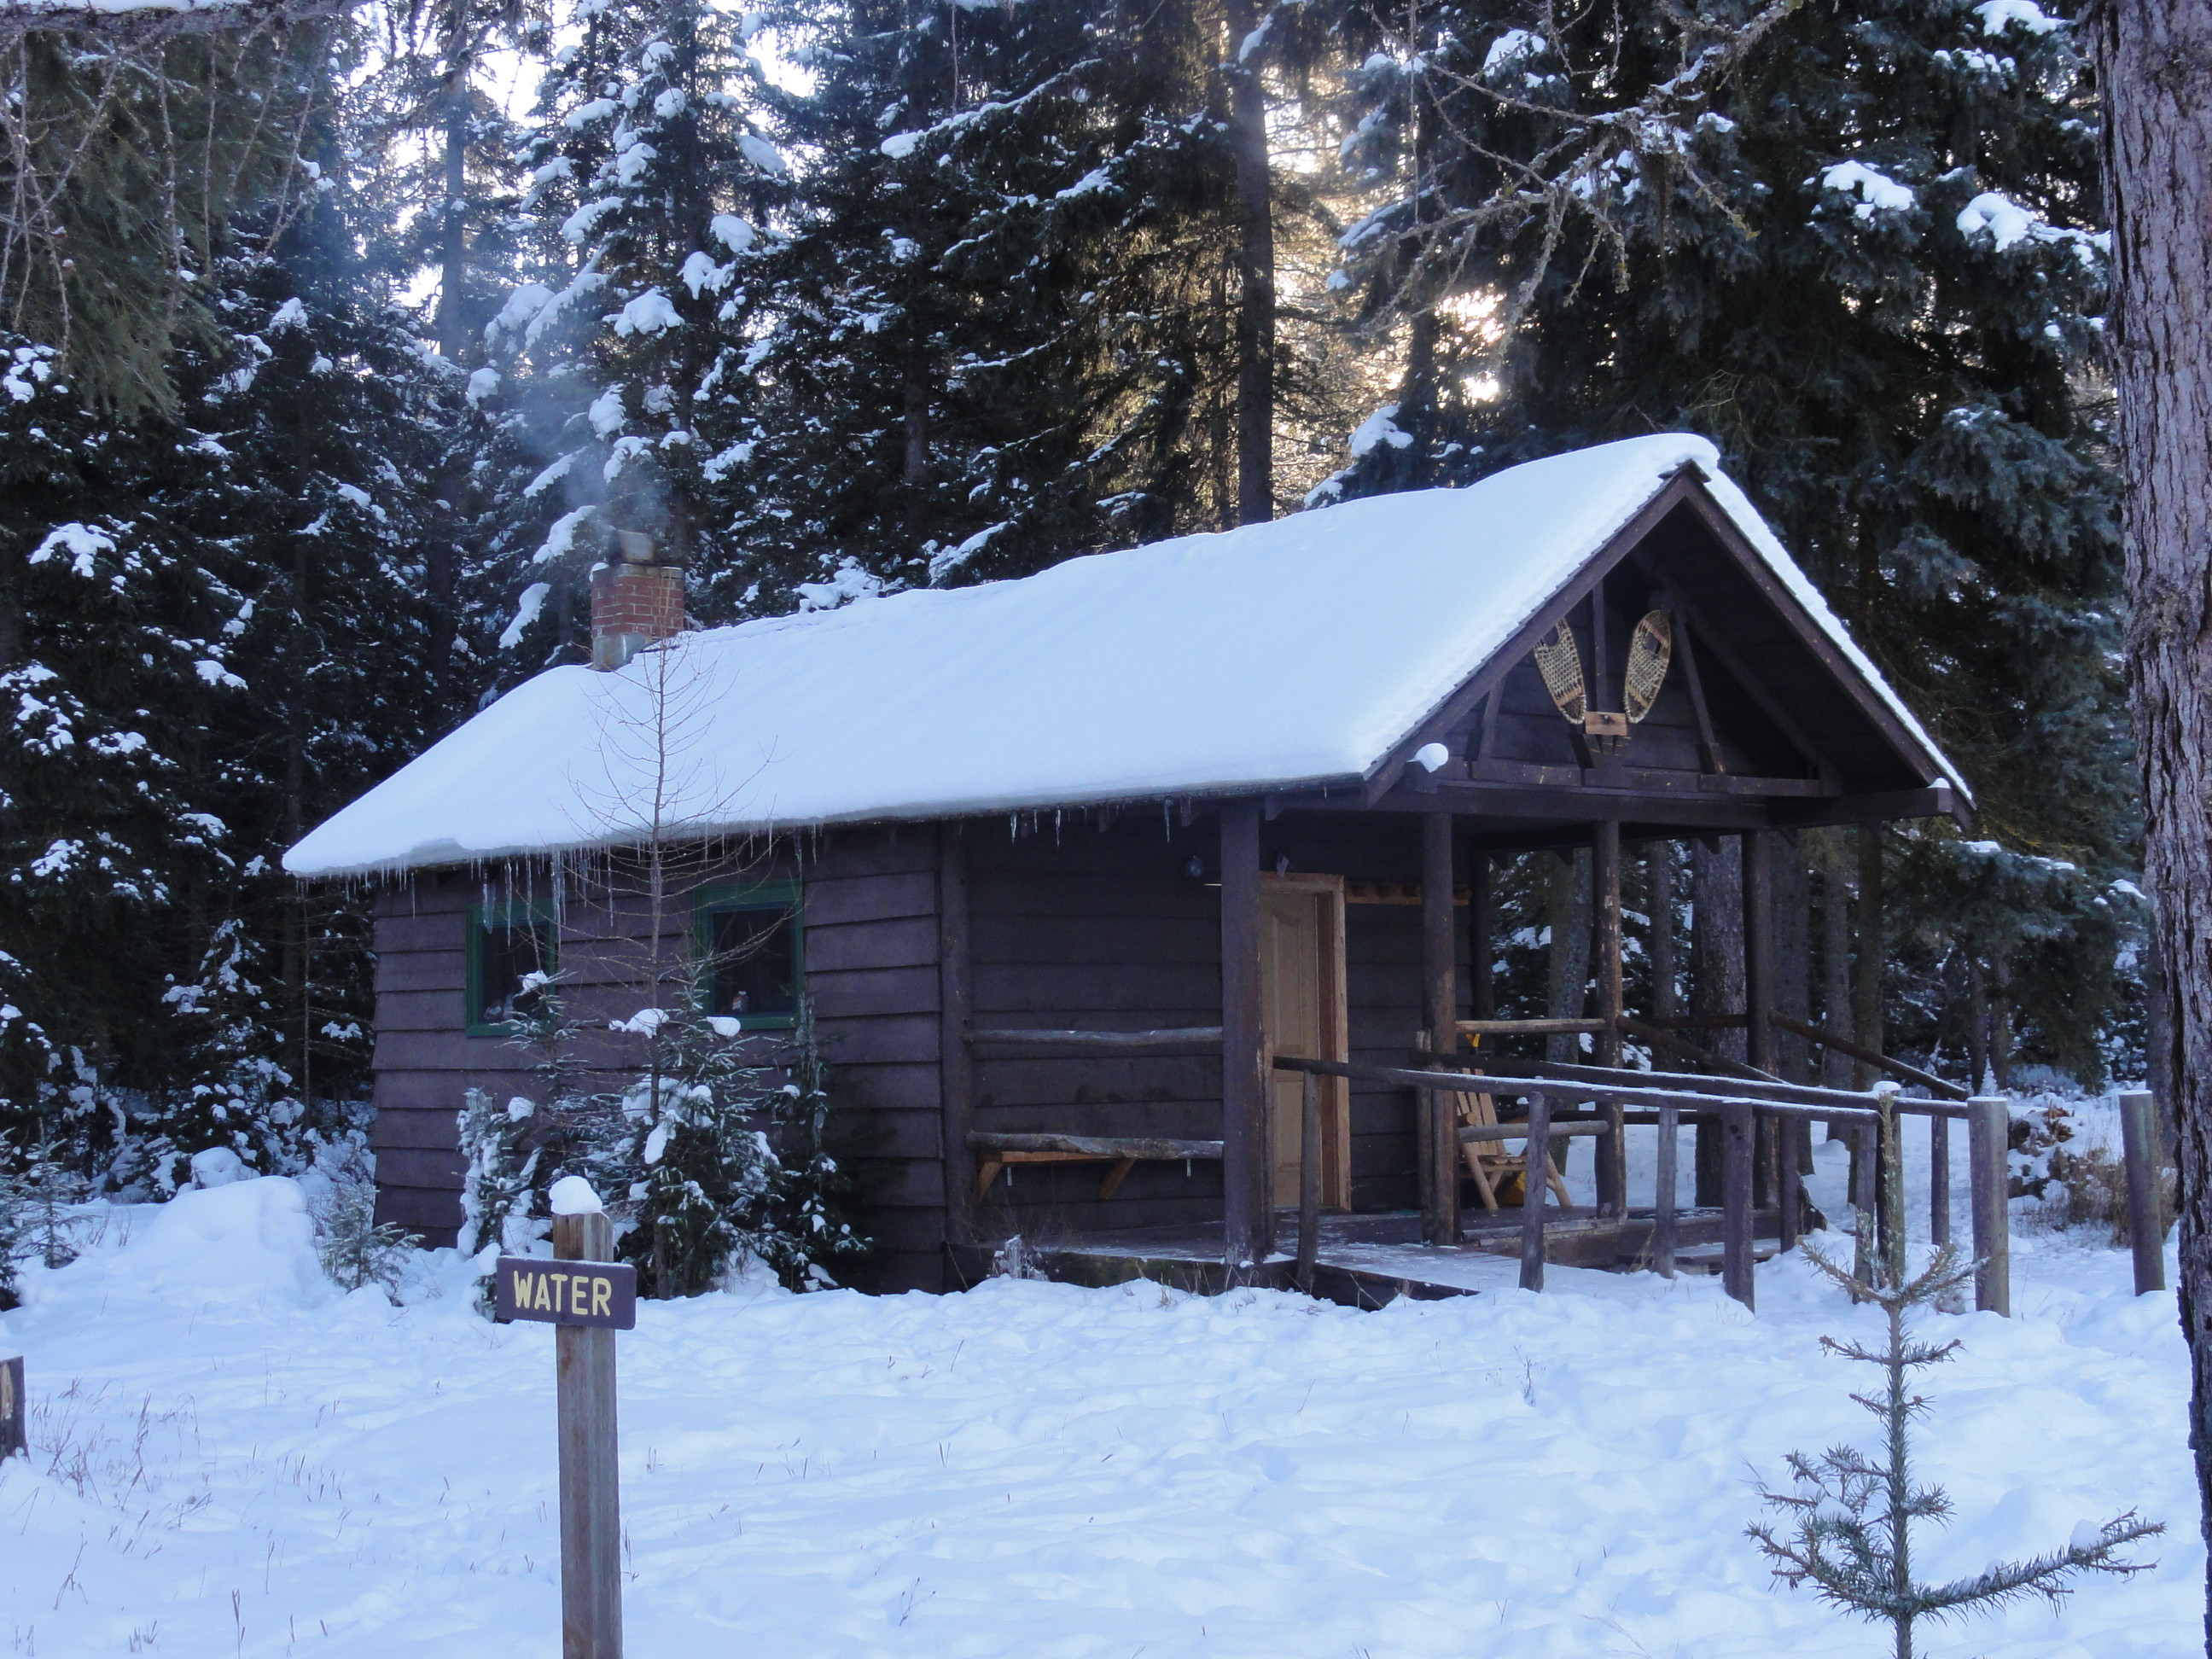 Log cabin in the woods winter - Feeling Like You Want To Rough It But Just A Little Not Up To Hauling Everything On Your Back And Skiing Miles To Get To A Cold Cabin In The Woods